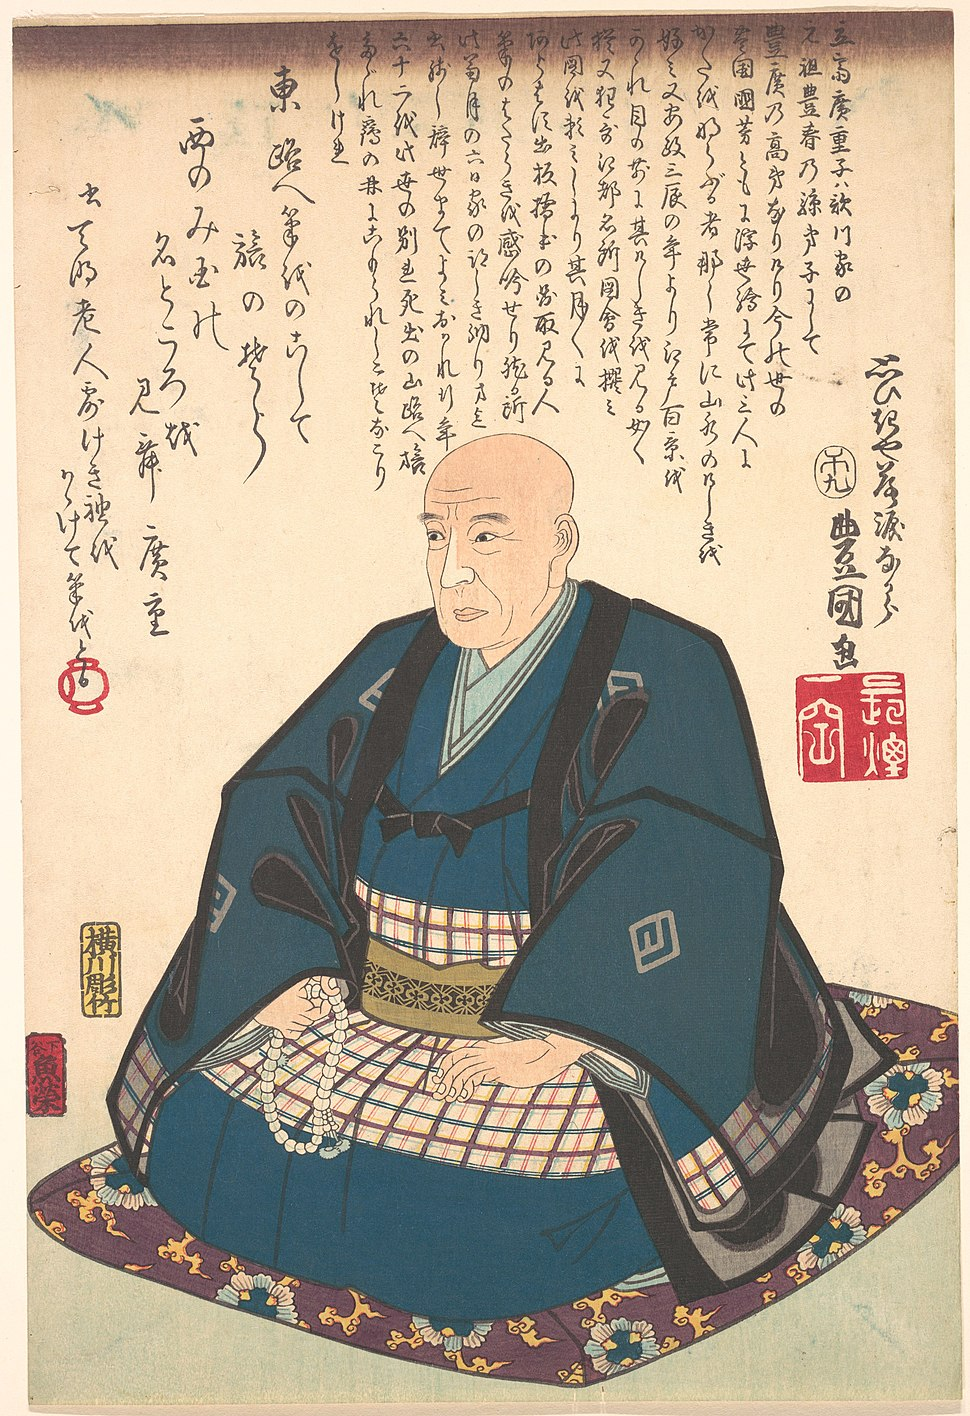 Memorial Portrait of Hiroshige, by Kunisada